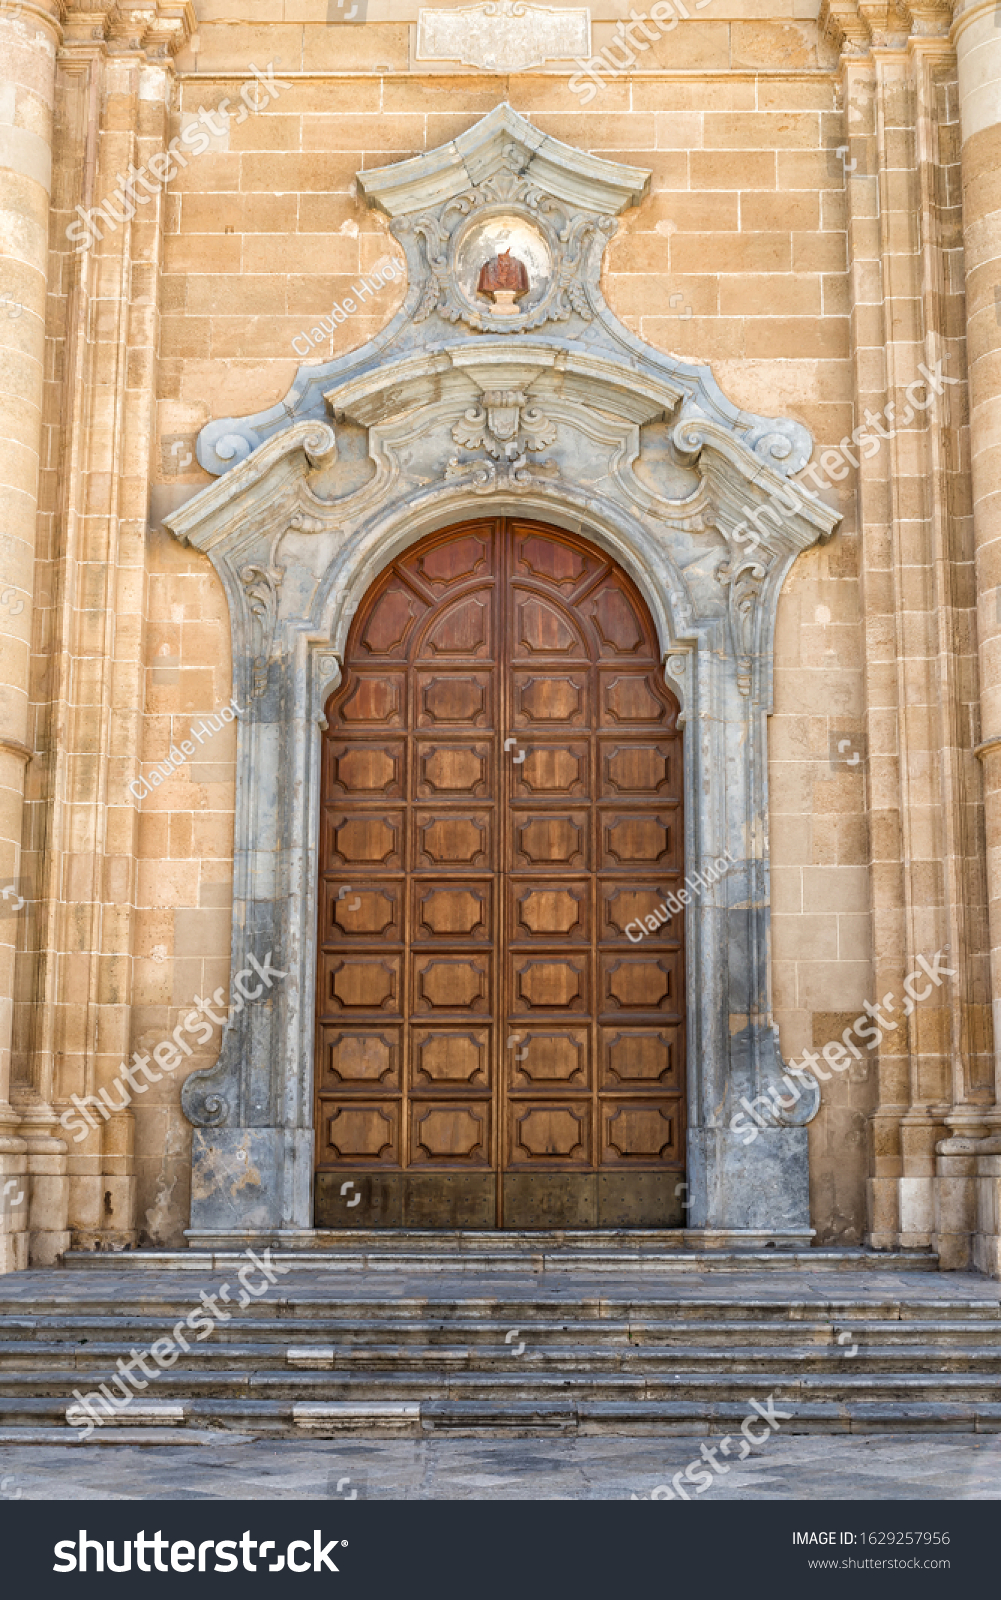 This is the baroque portal of the cathedral of Saint Thomas of Canterbury which is the mother church of Marsala in Sicily, Italy.